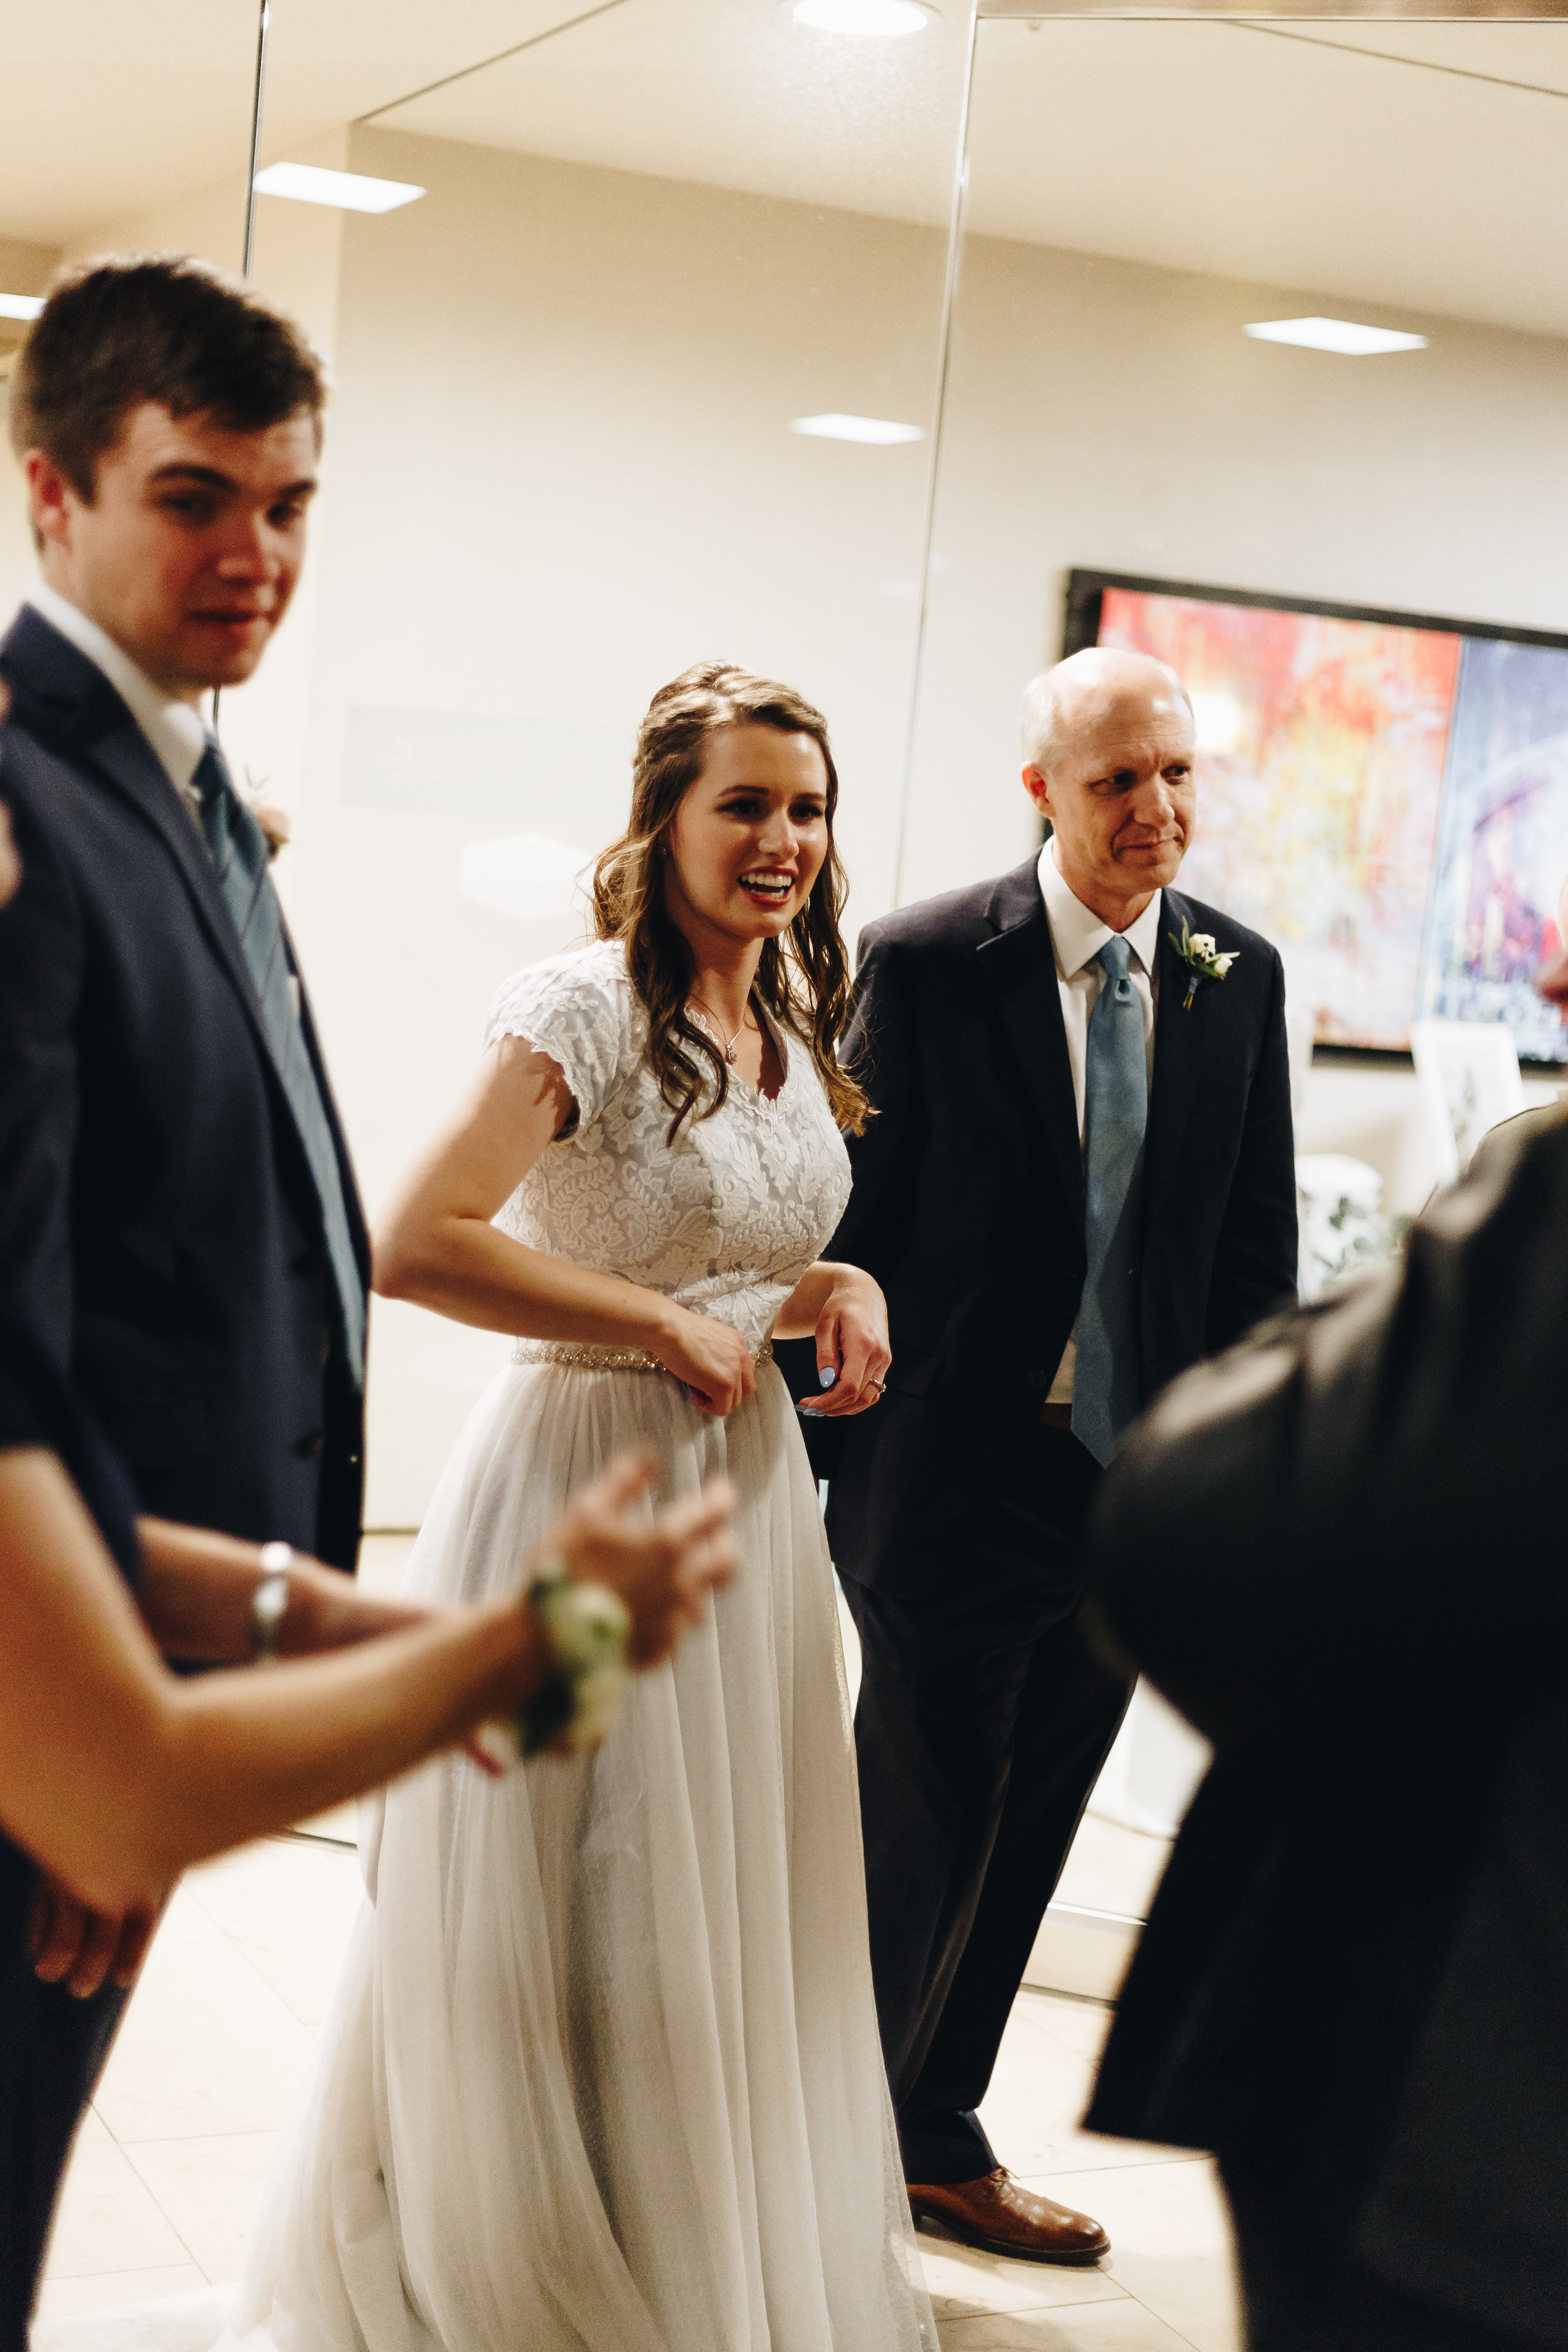 morganandryanwedding-247.jpg